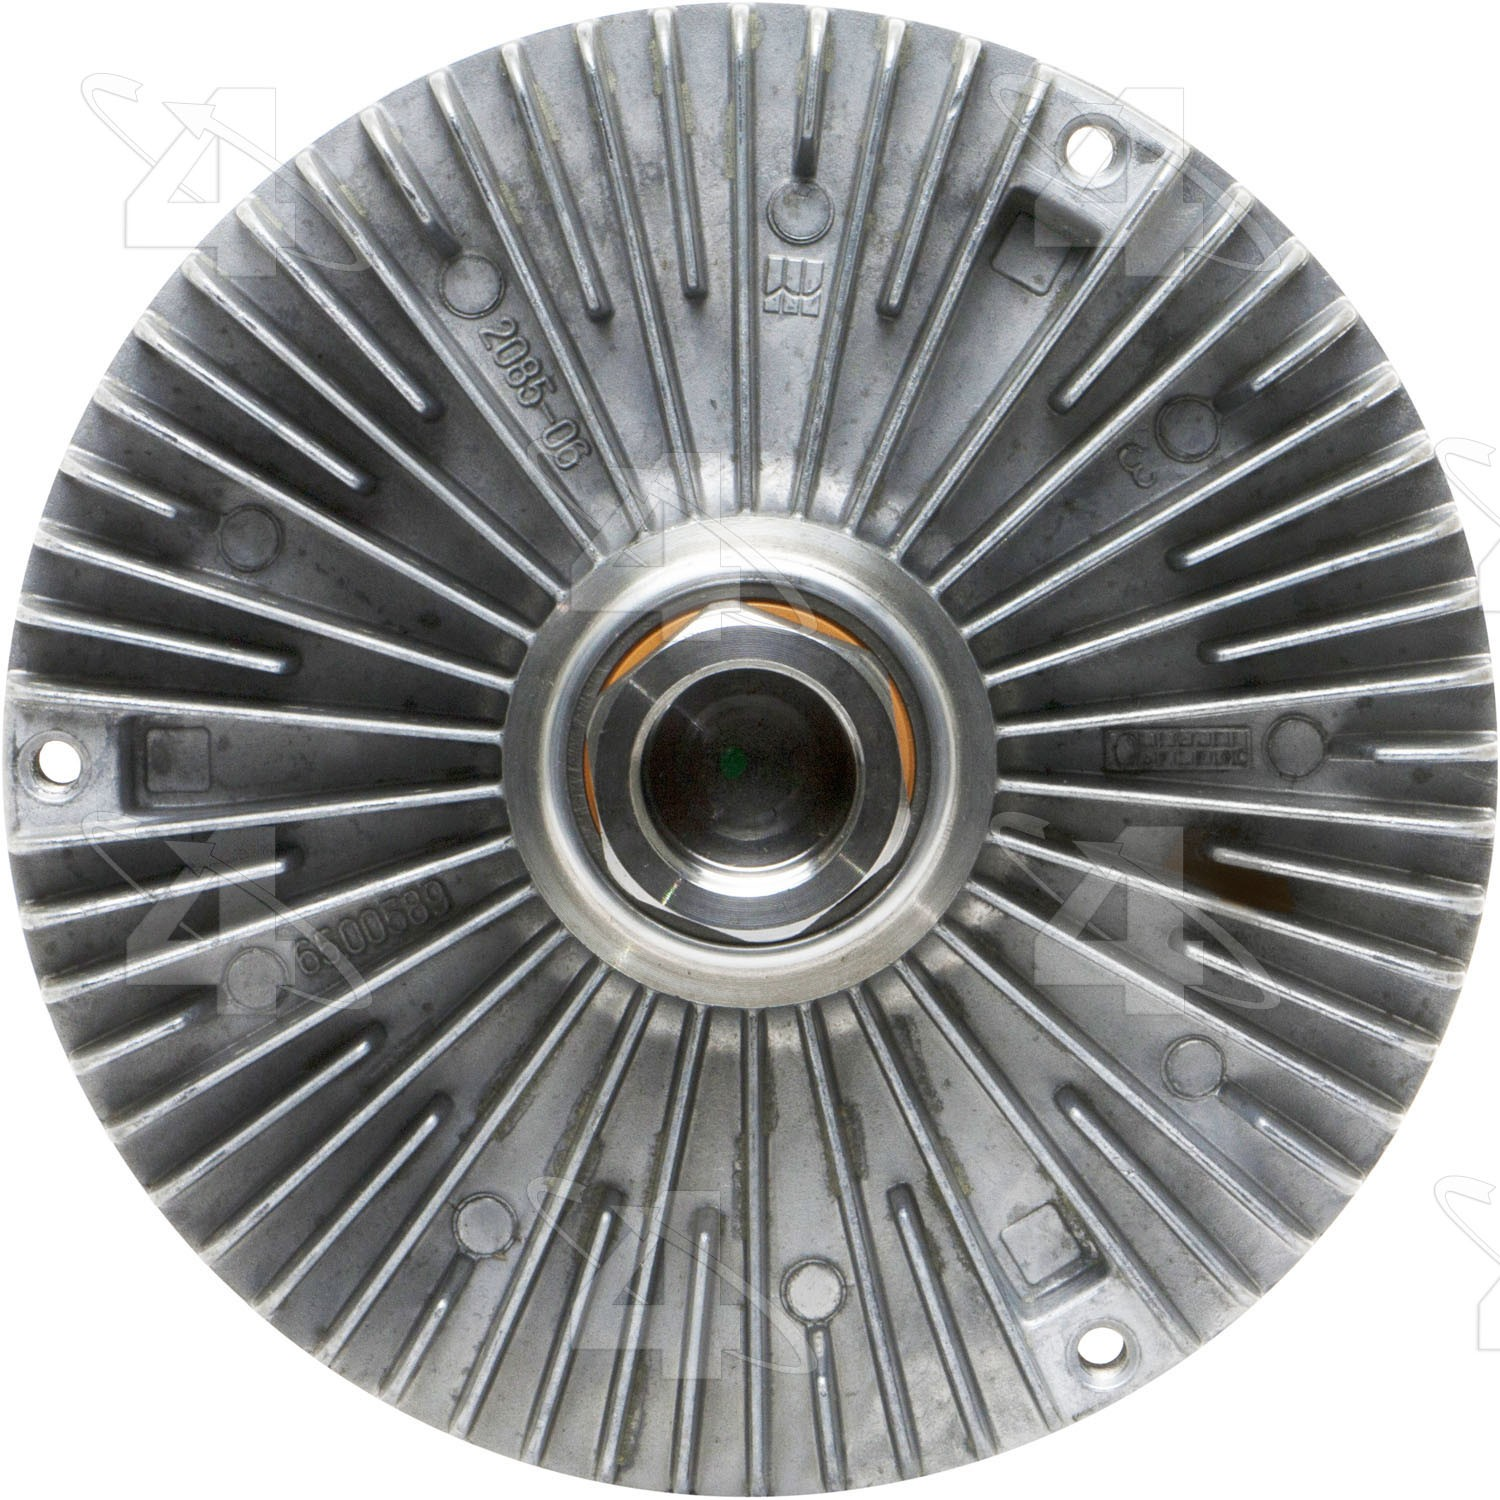 hight resolution of 1998 audi a8 quattro engine cooling fan clutch fs 46082